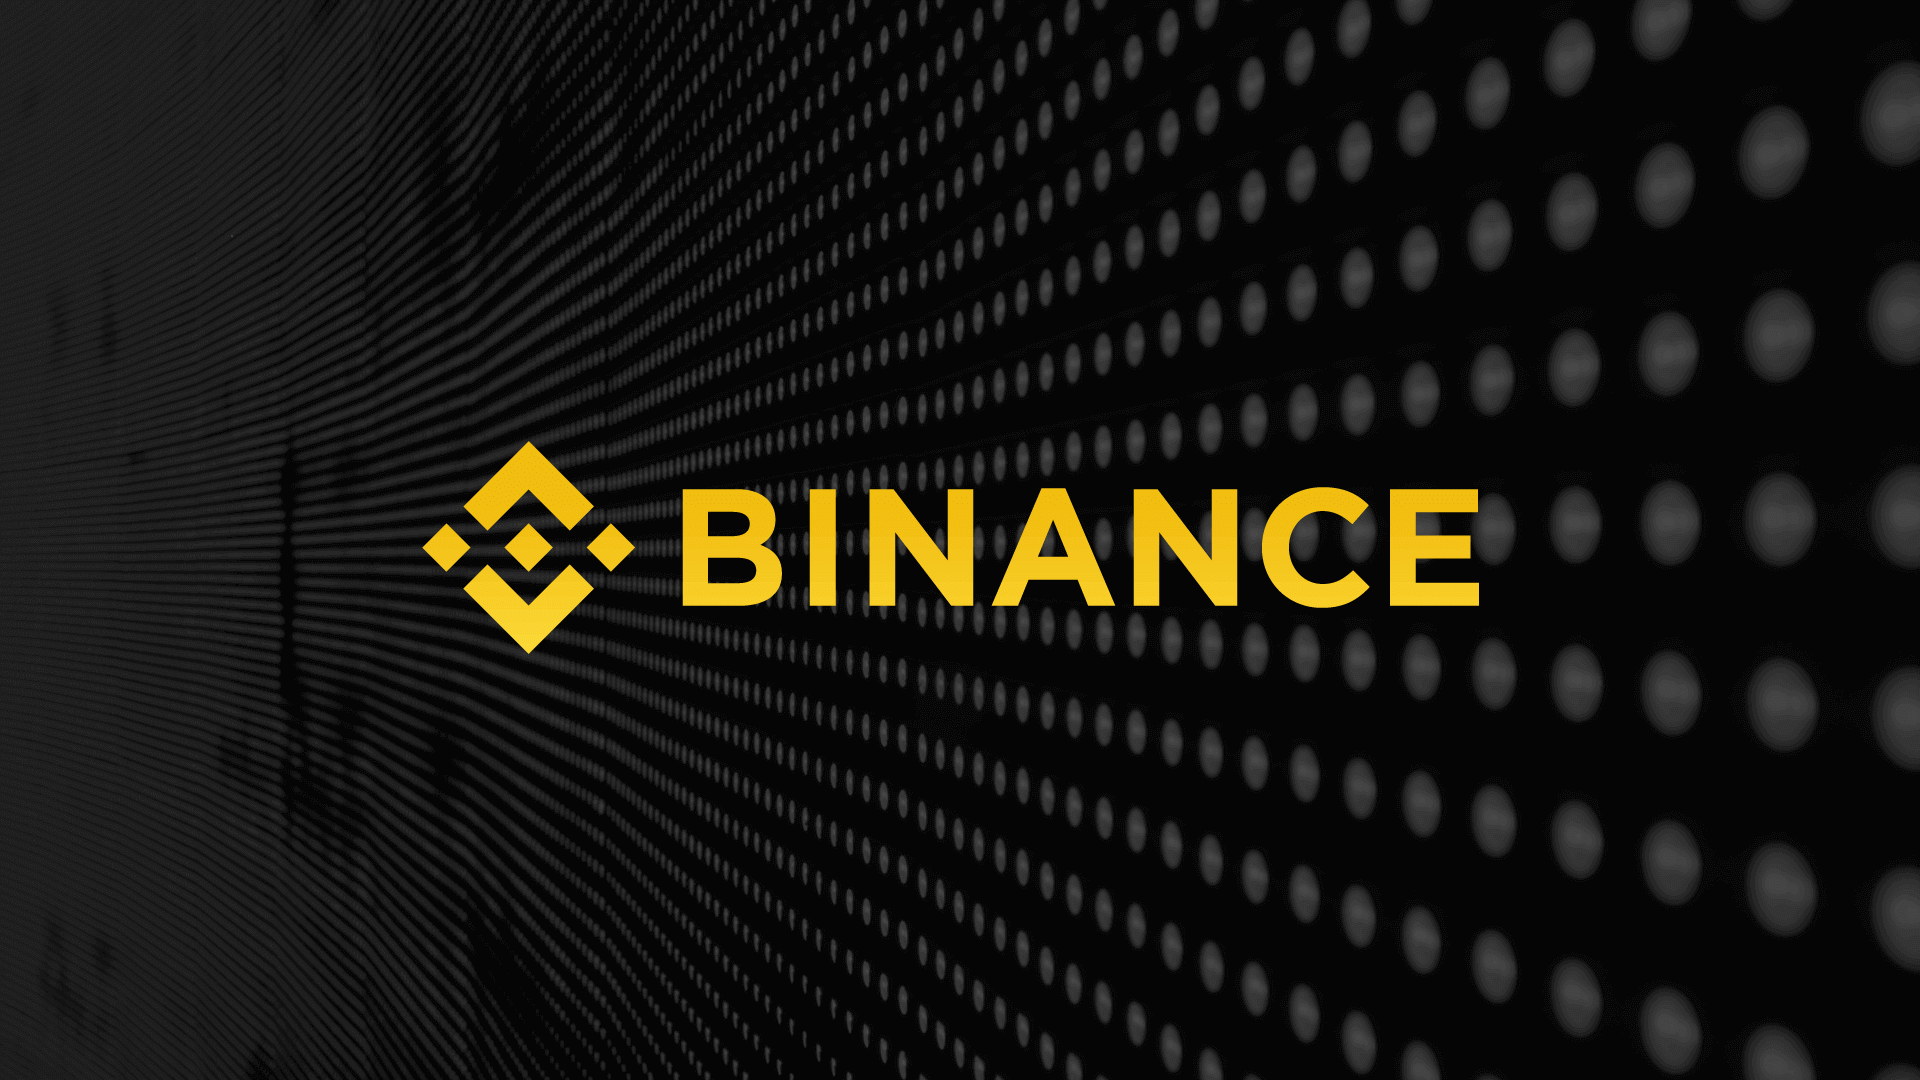 Binance: How the FCA's Warning Won't Affect UK Crypto Players